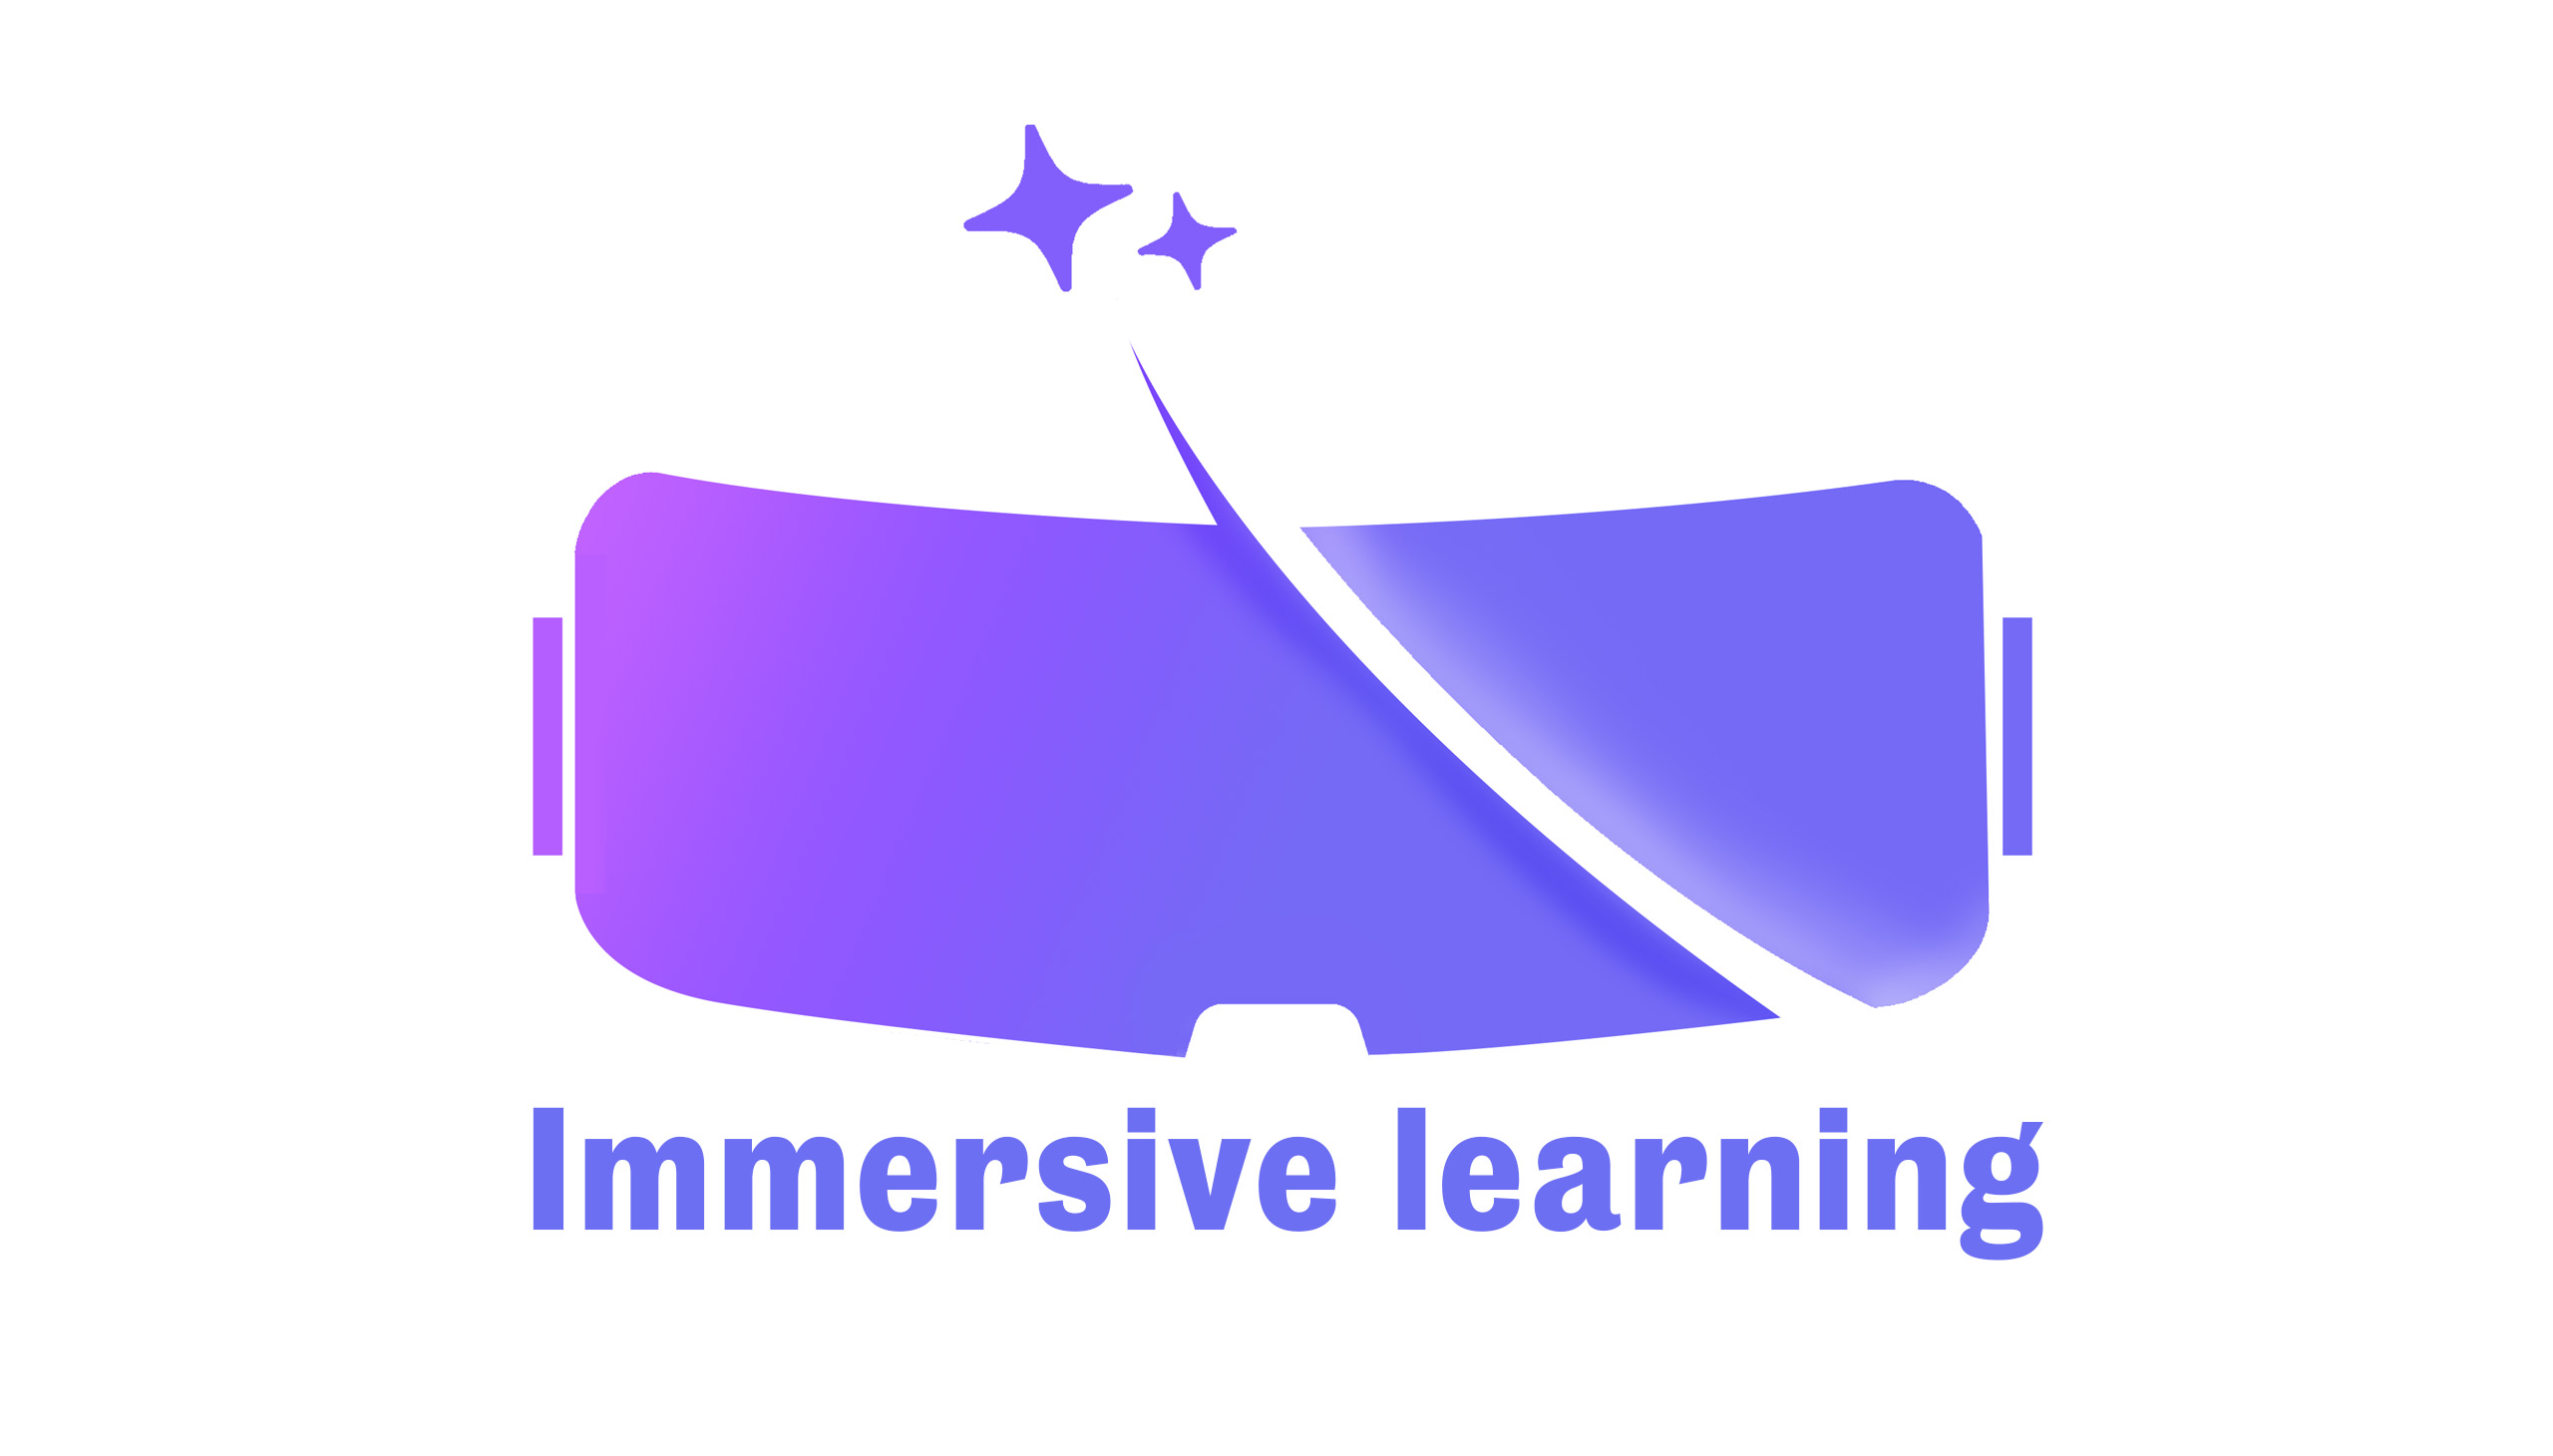 immersive learning logo